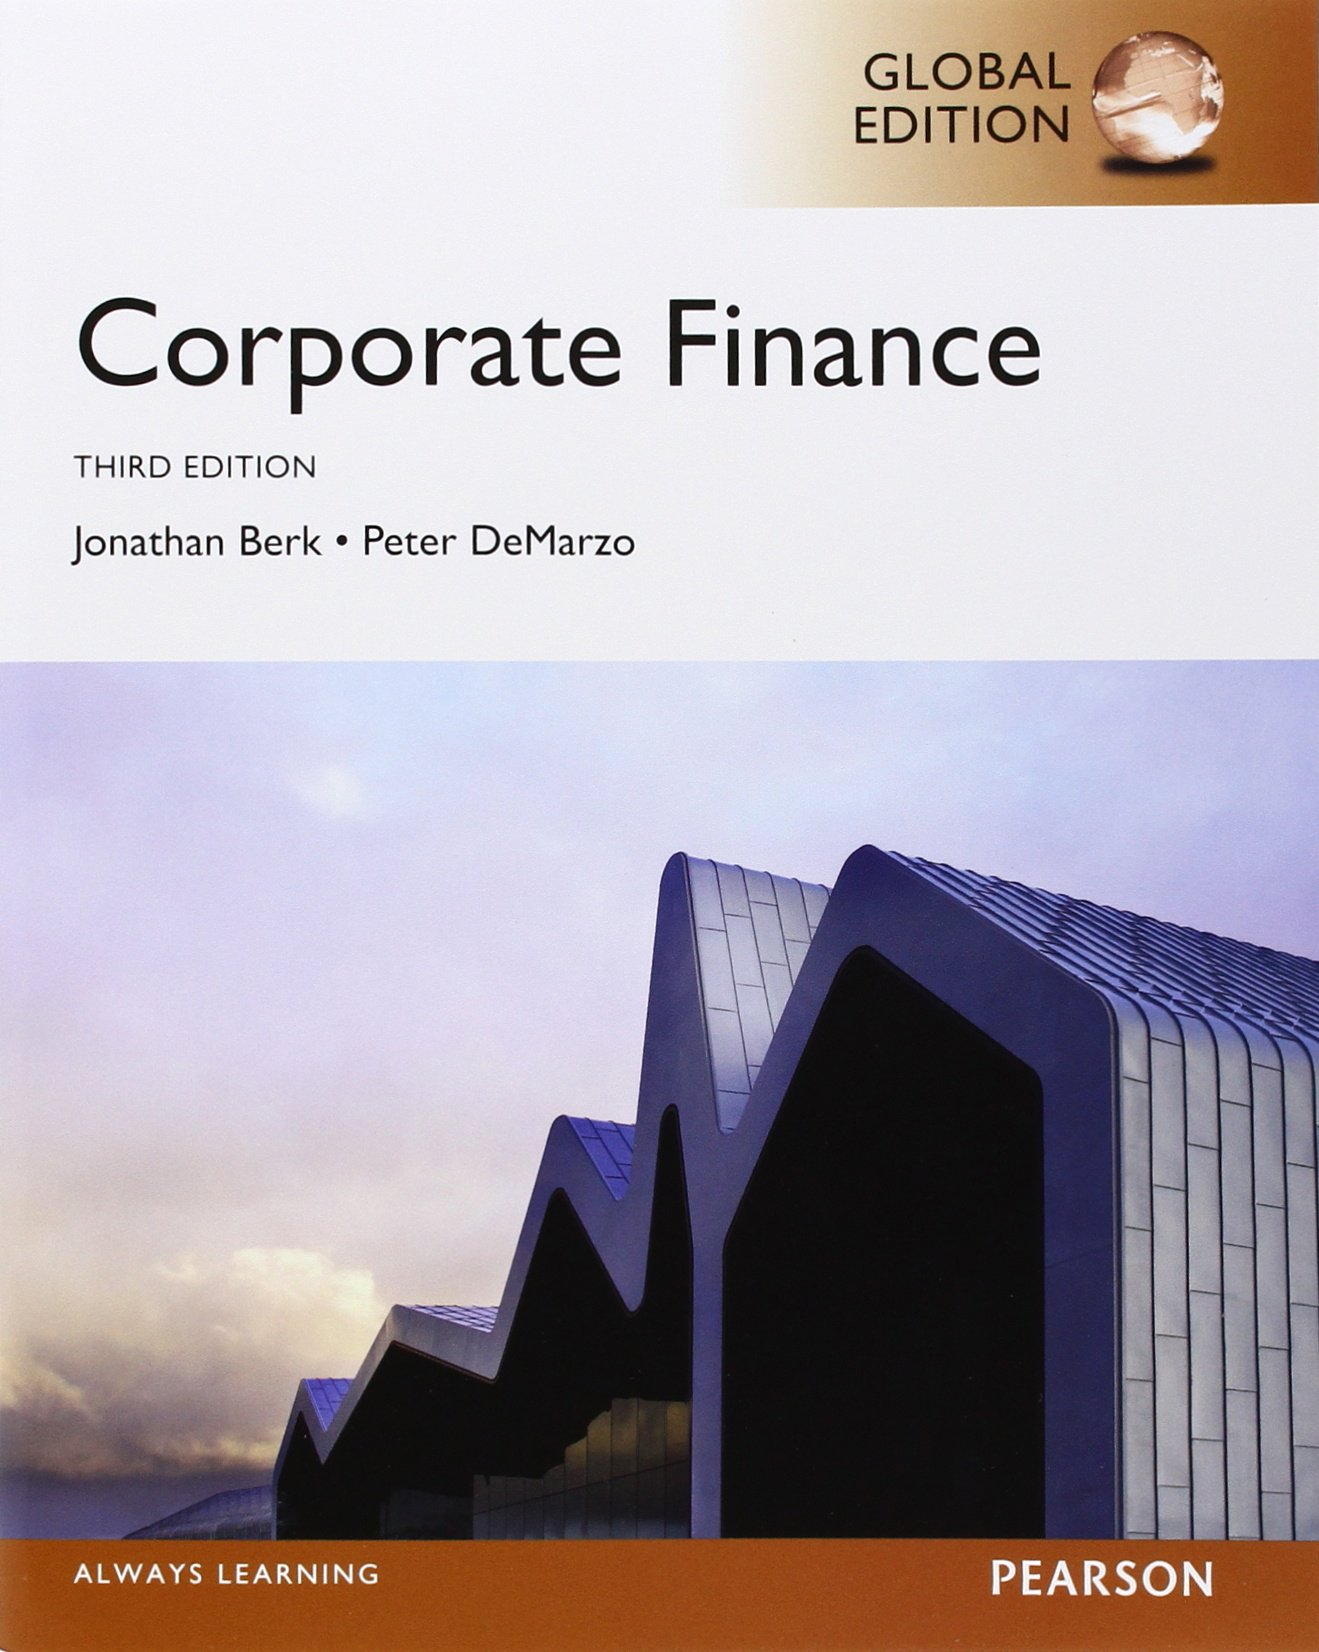 Corporate finance 3rd edition jonathan demarzo peter eds berk corporate finance 3rd edition jonathan demarzo peter eds berk 9780273792024 amazon books fandeluxe Image collections